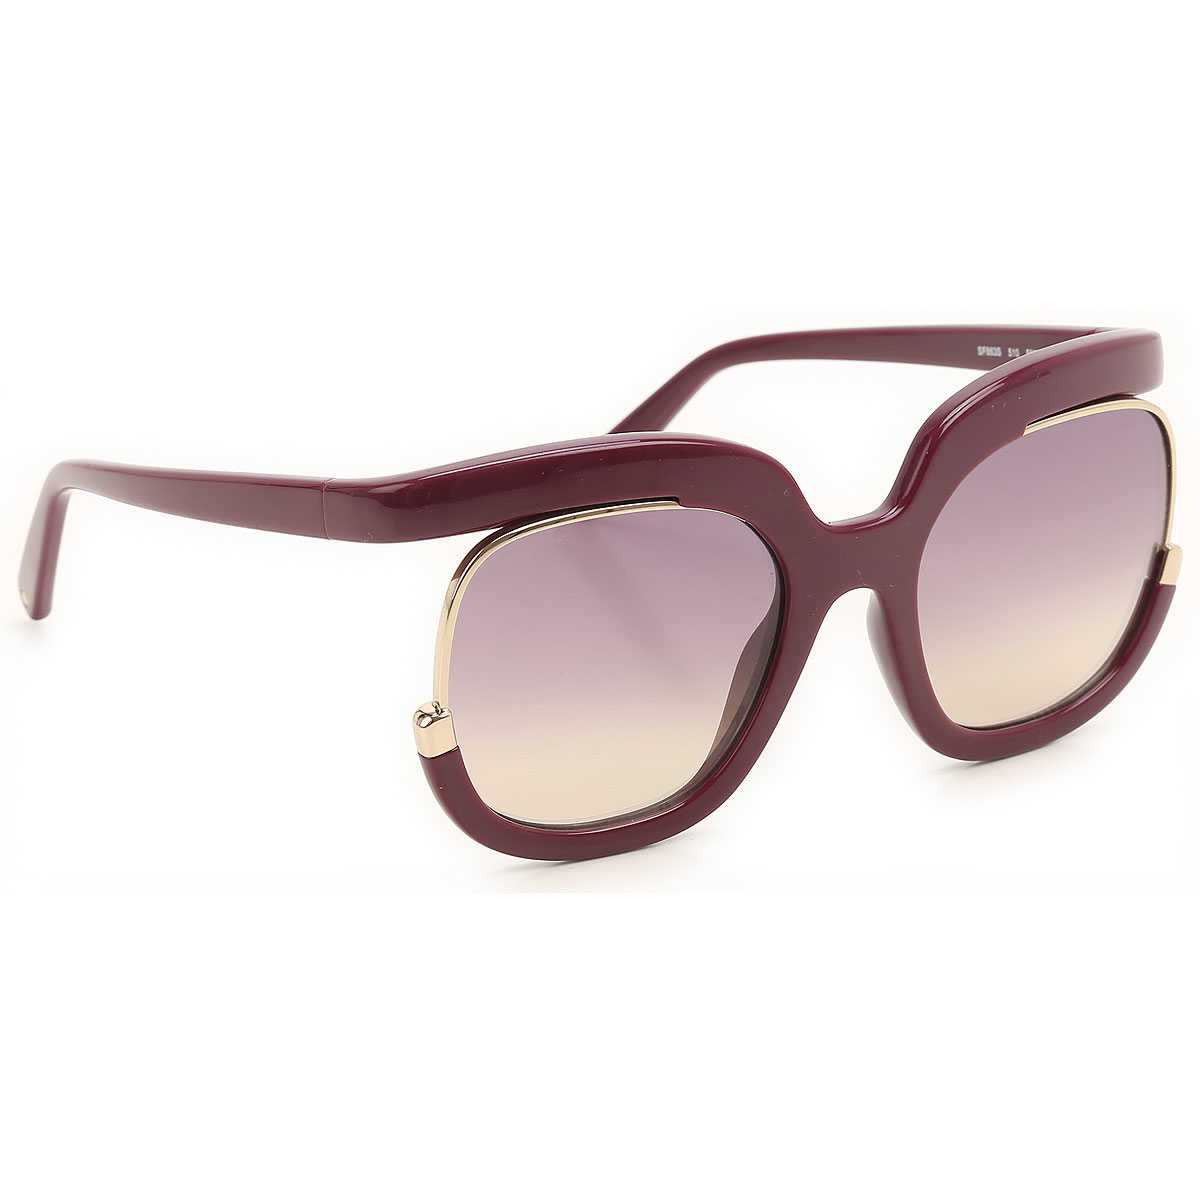 Salvatore Ferragamo Sunglasses On Sale